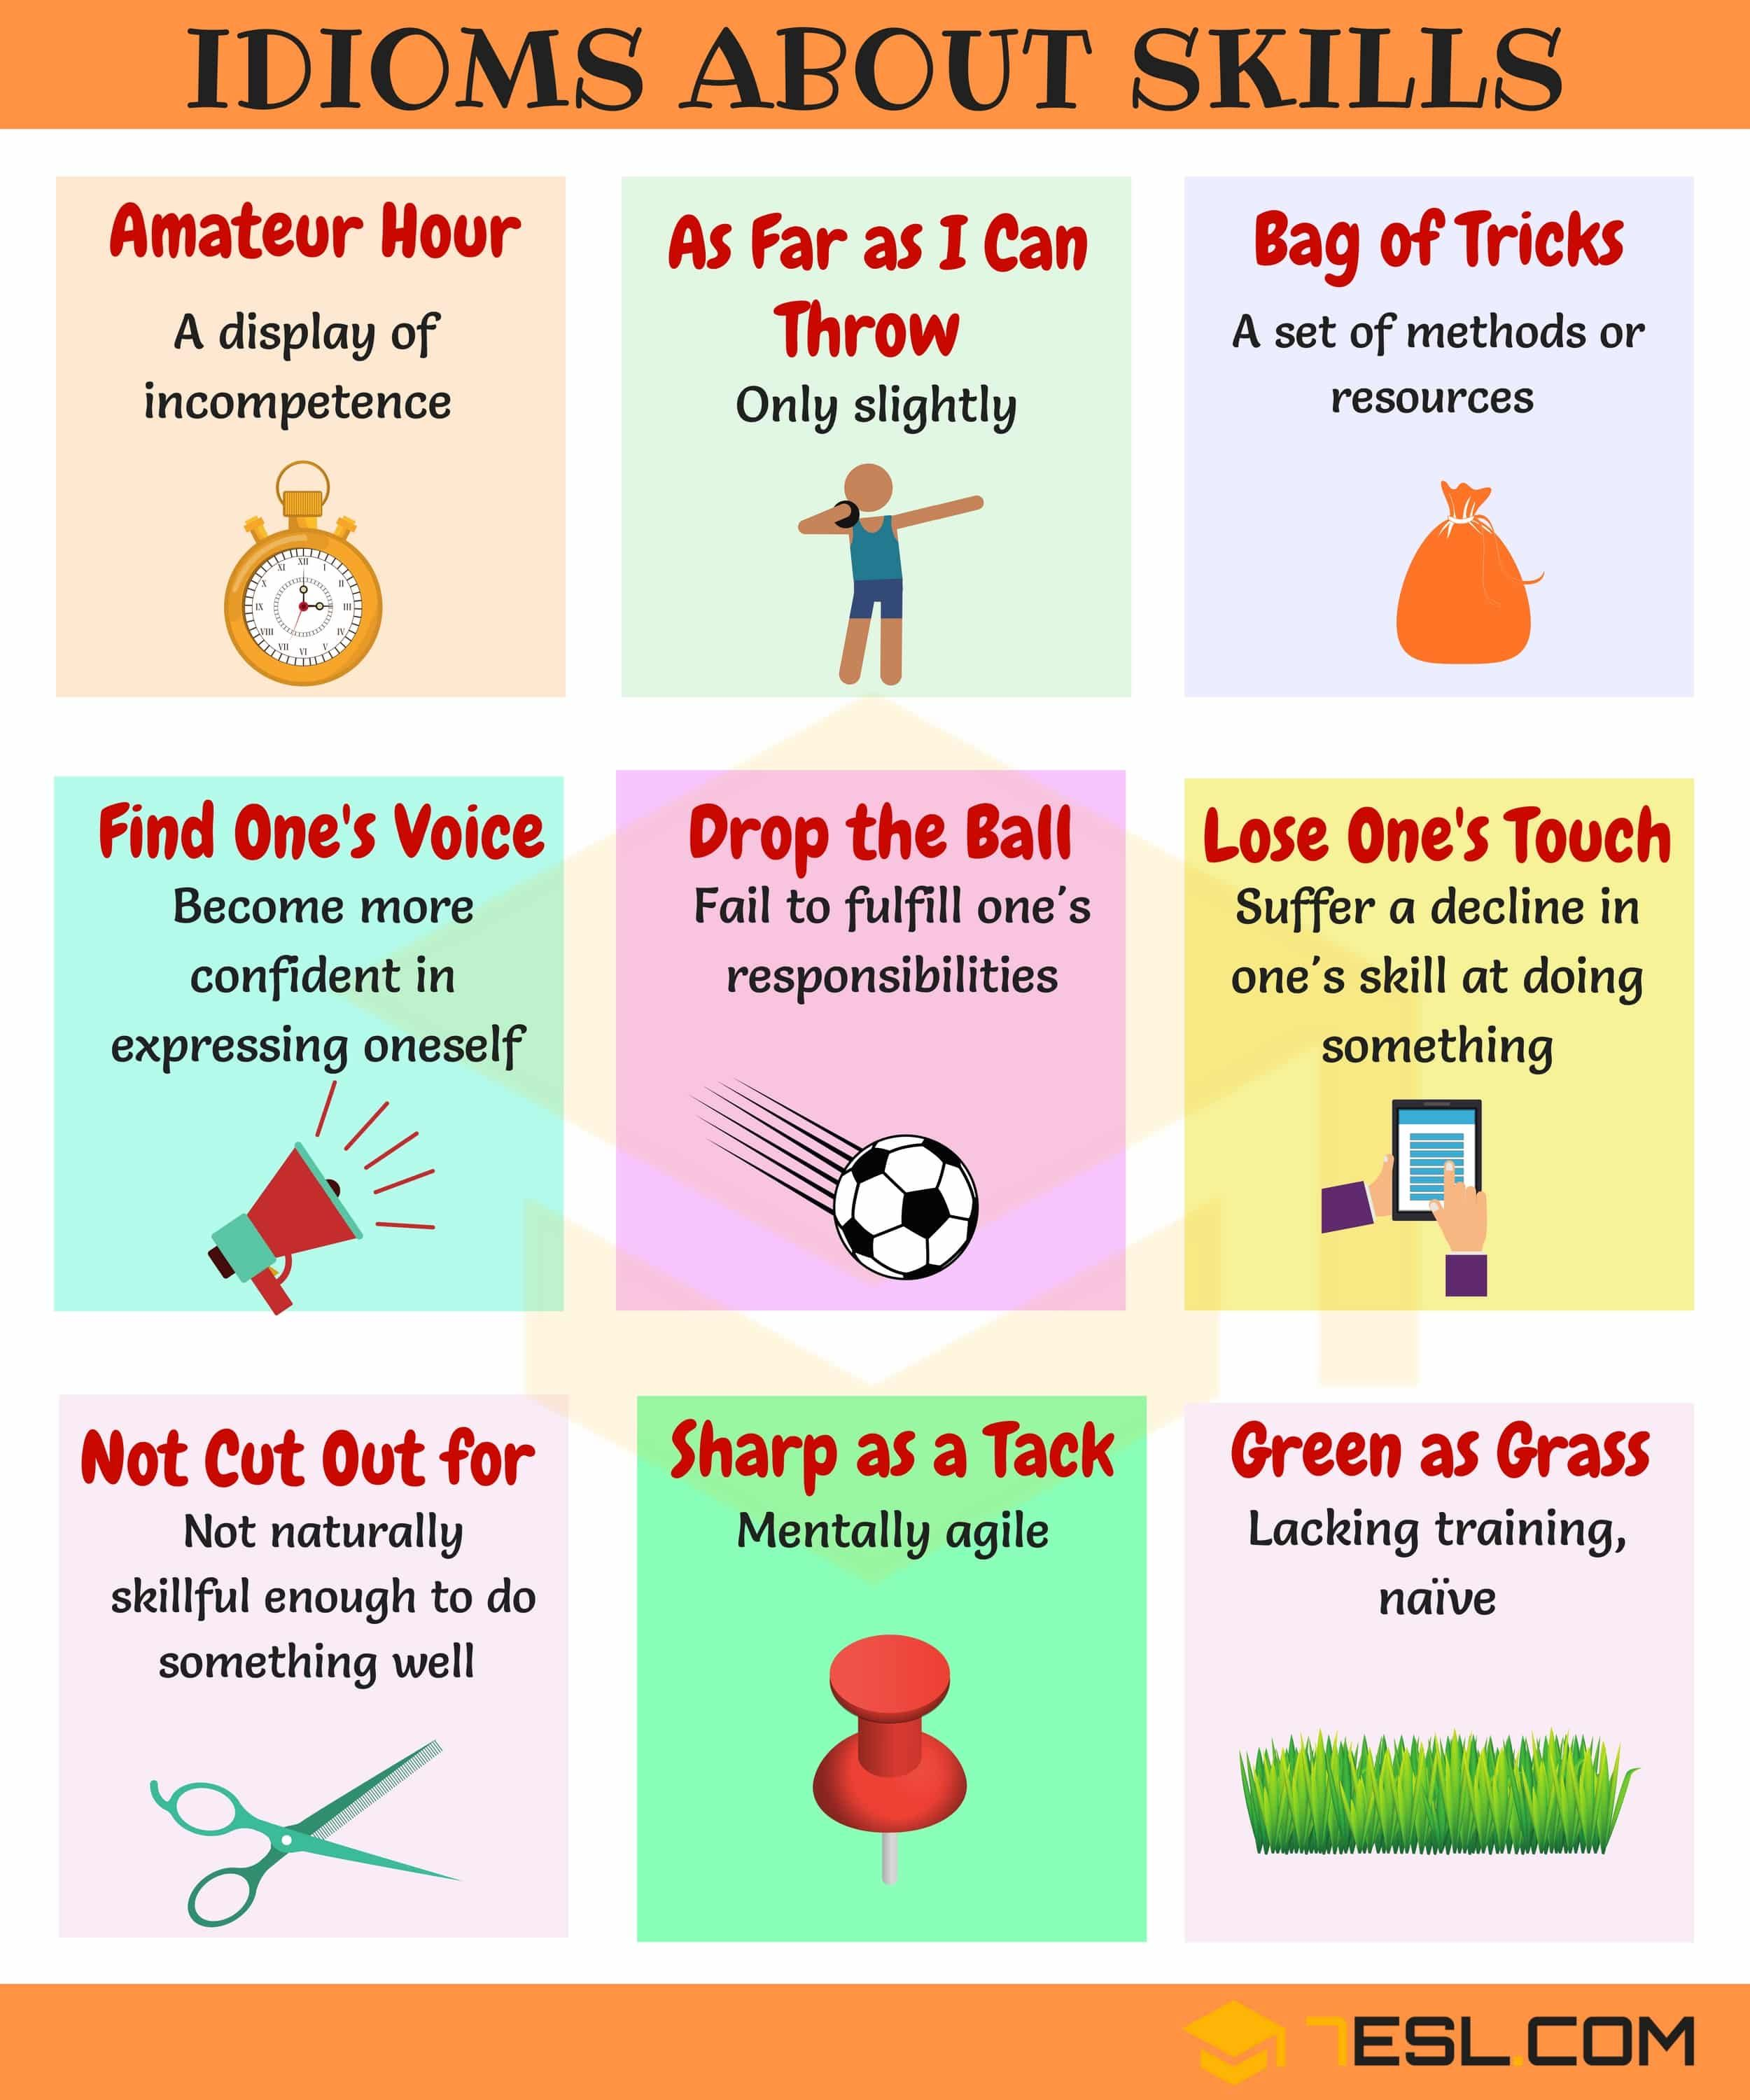 Skill Idioms 10 Useful Phrases Idioms About Skills 7esl English Idioms Idioms And Phrases Idioms